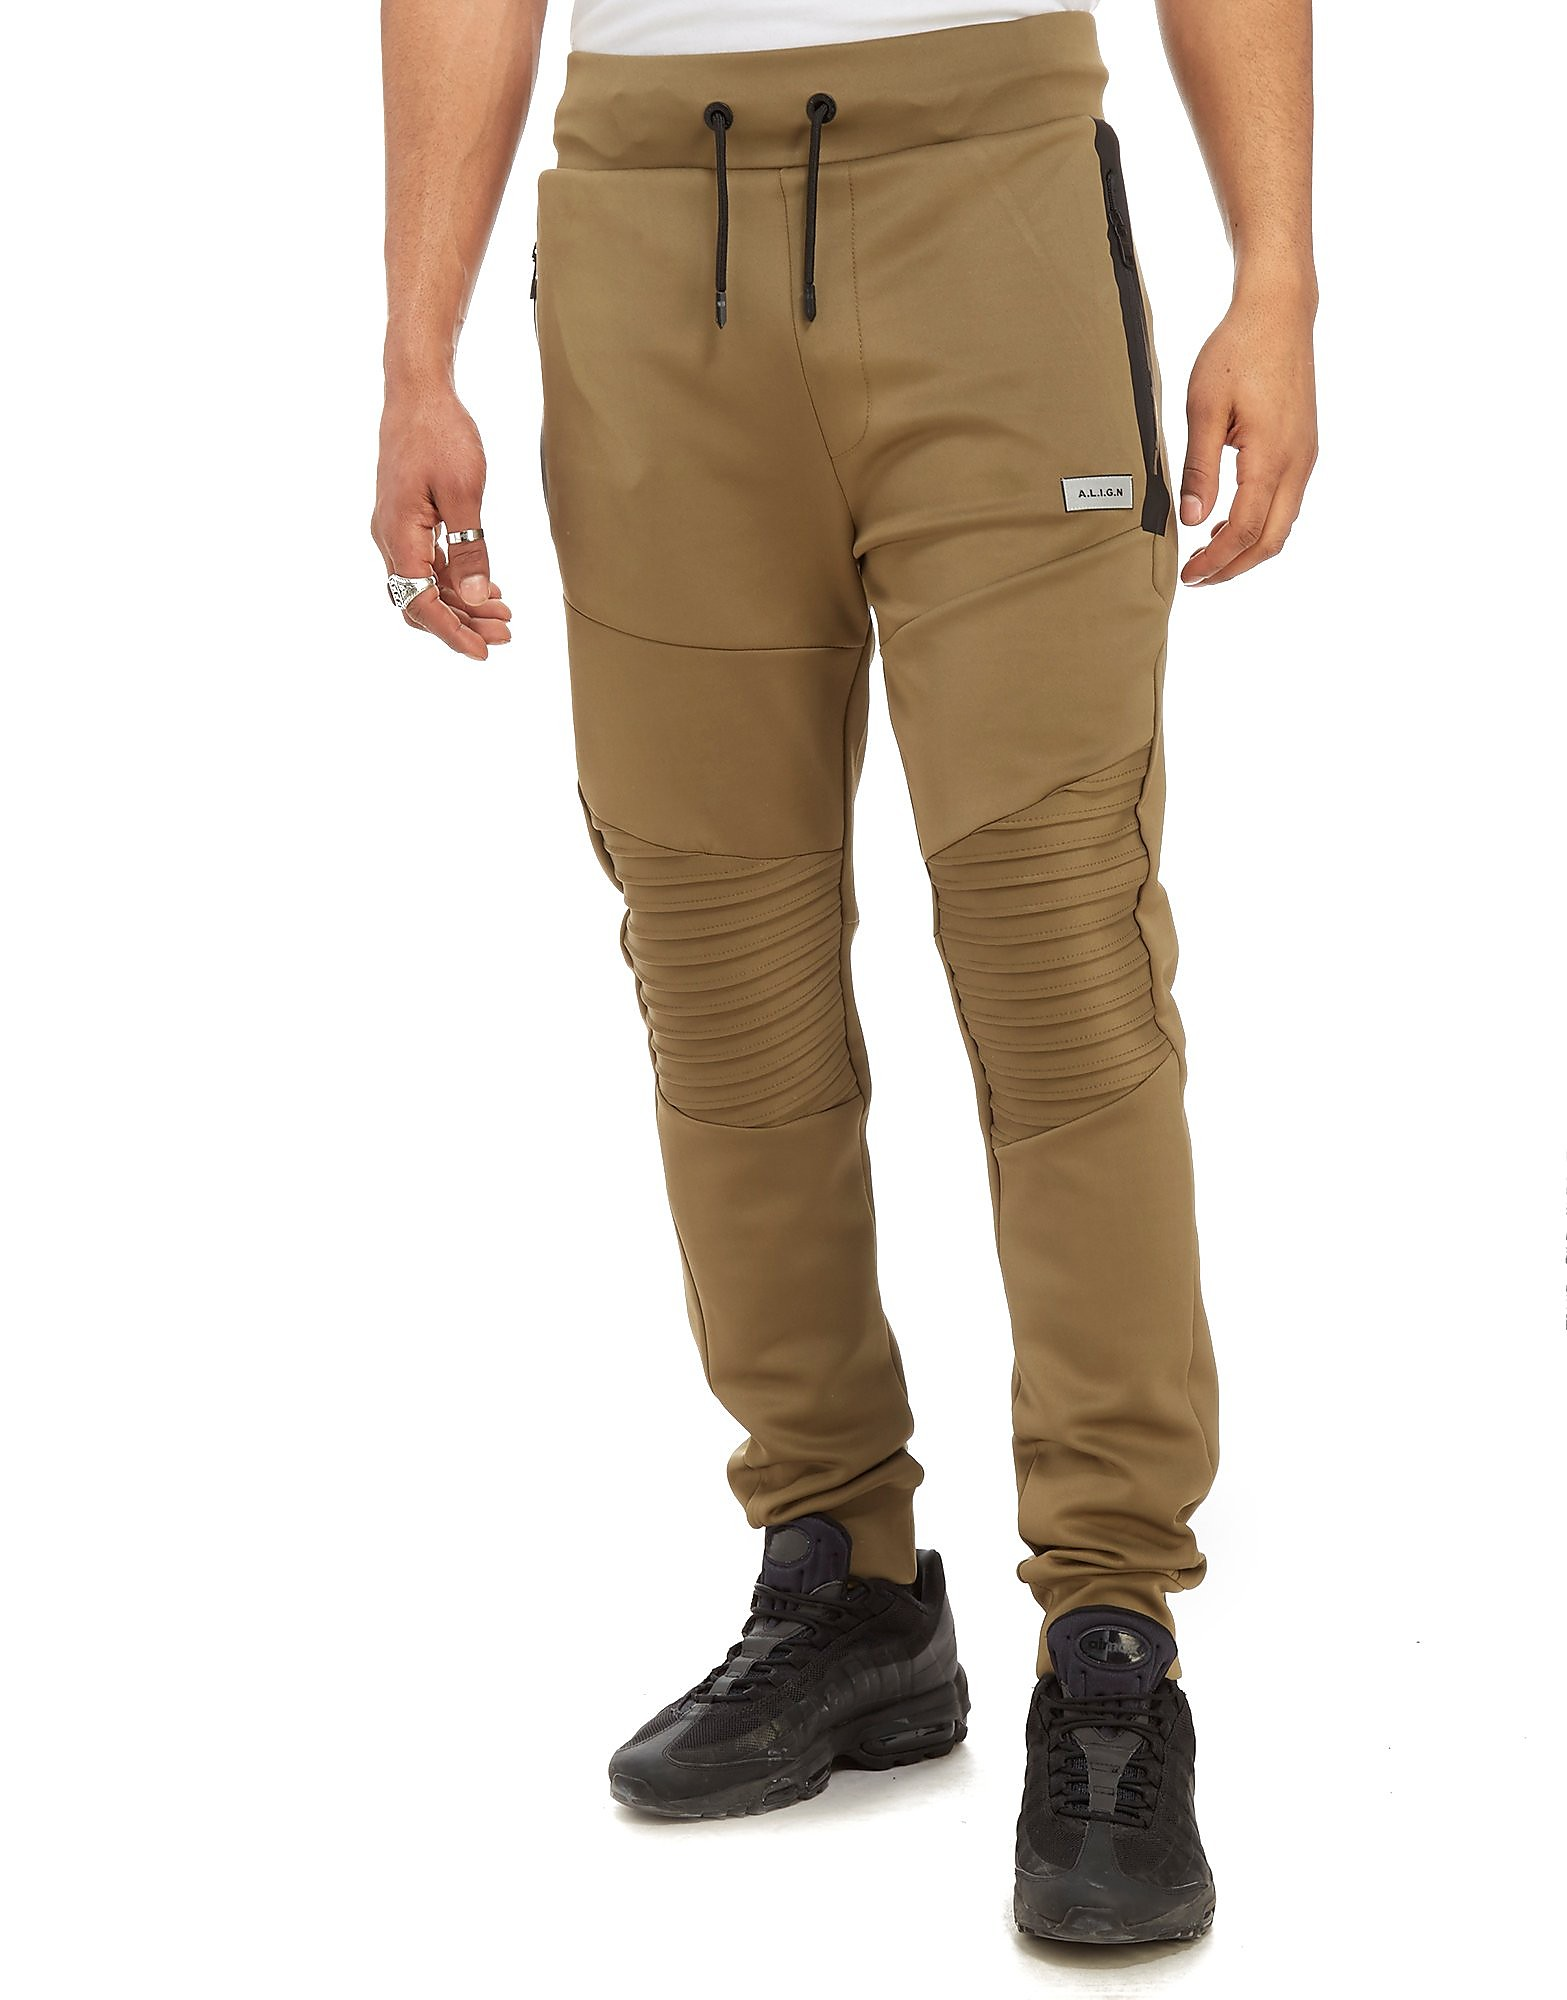 Align Mustang Cuffed Track Pants